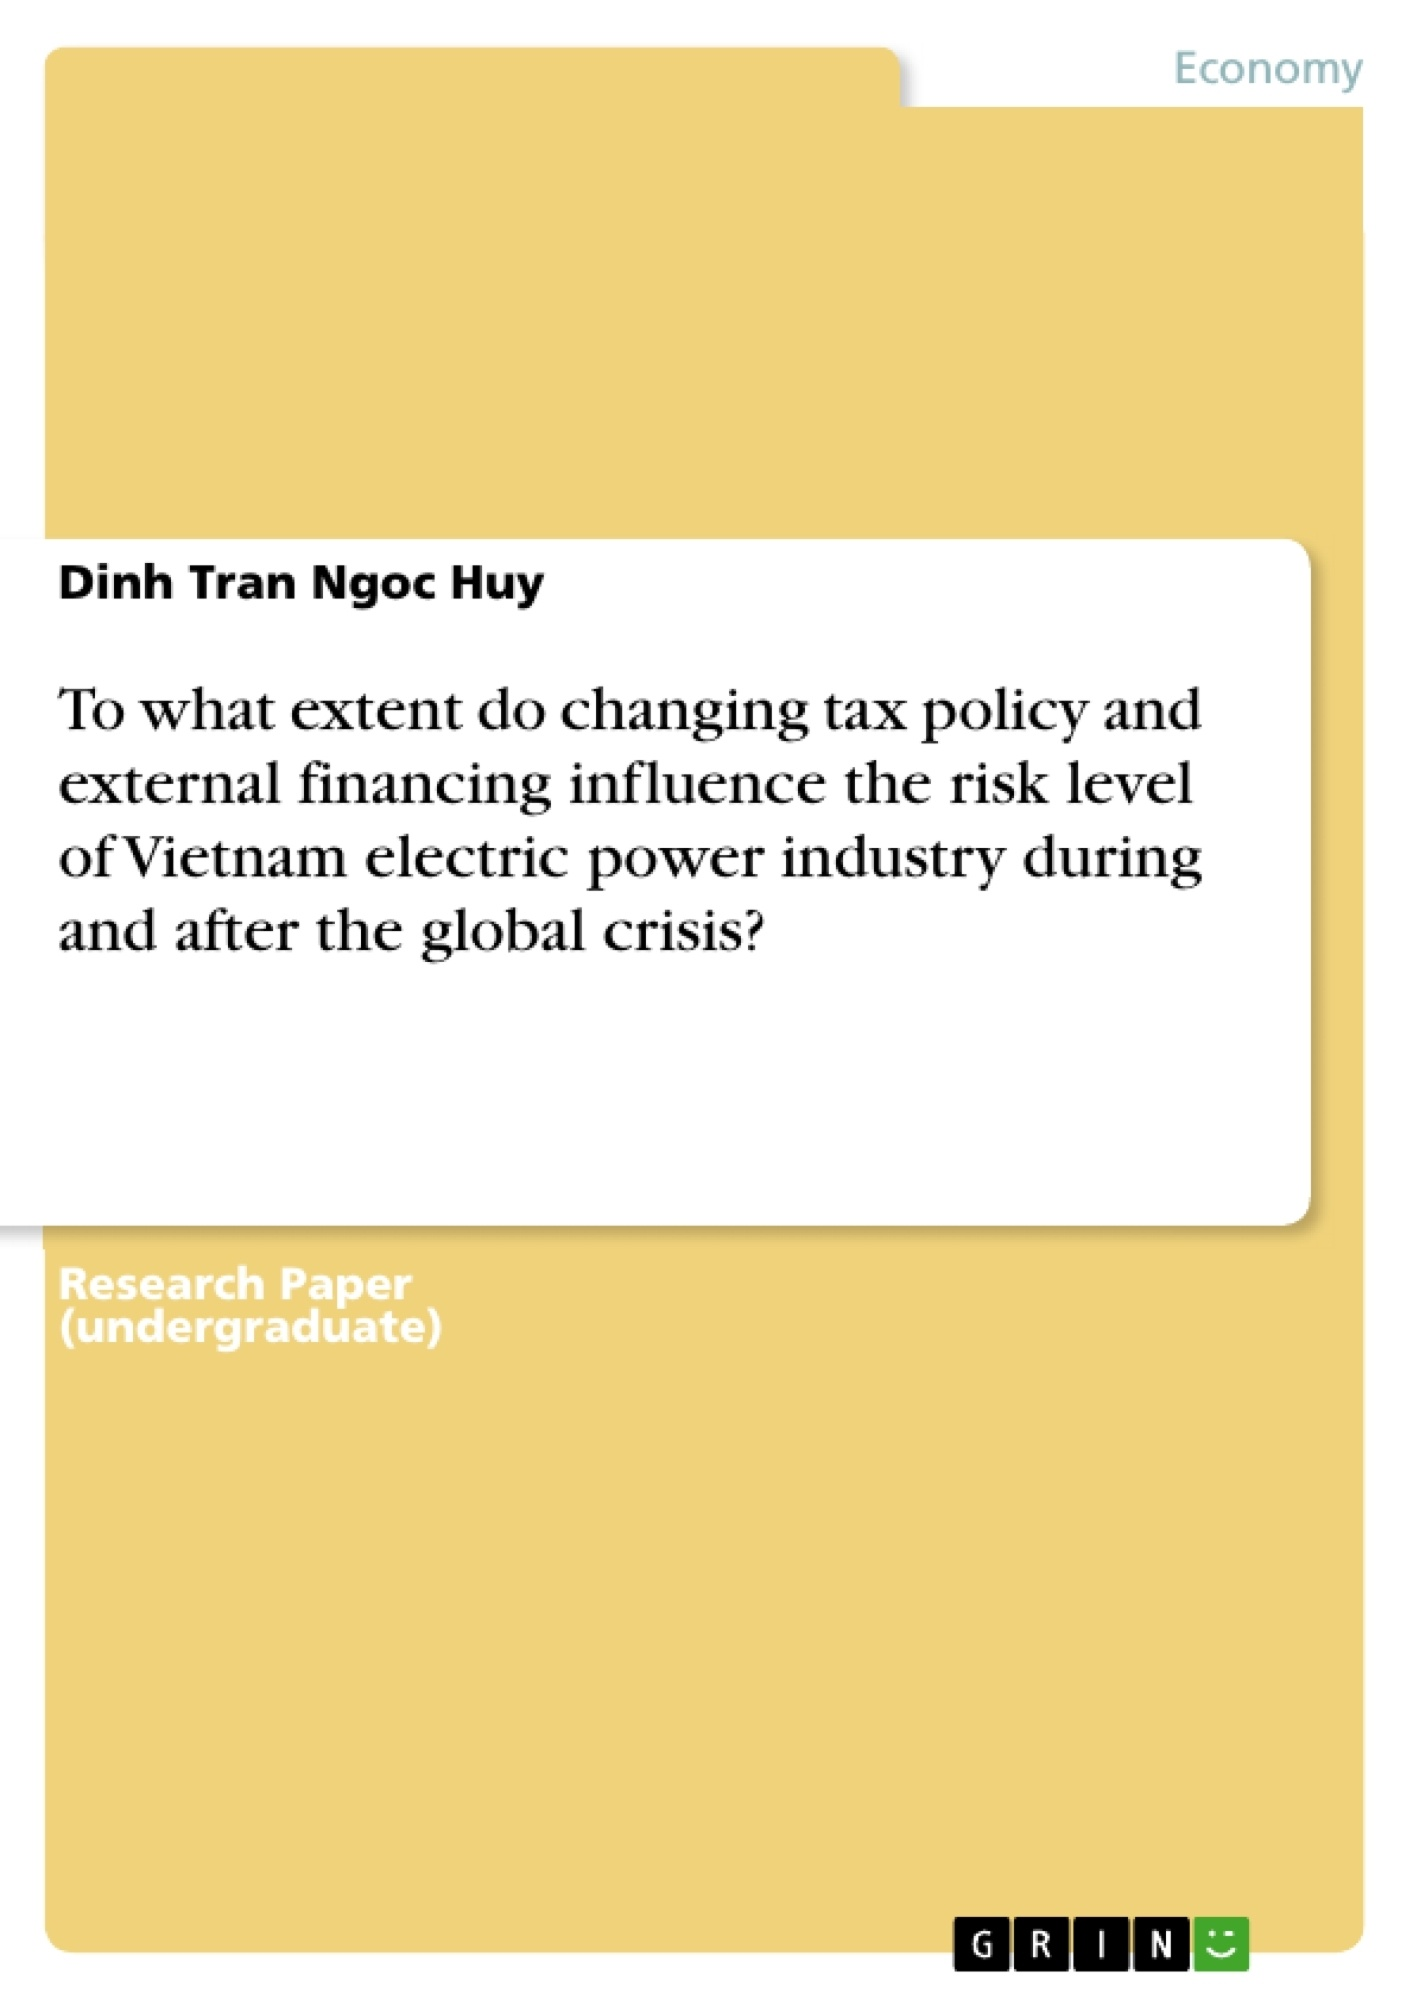 Title: To what extent do changing tax policy and external financing influence the risk level of Vietnam electric power industry during and after the global crisis?